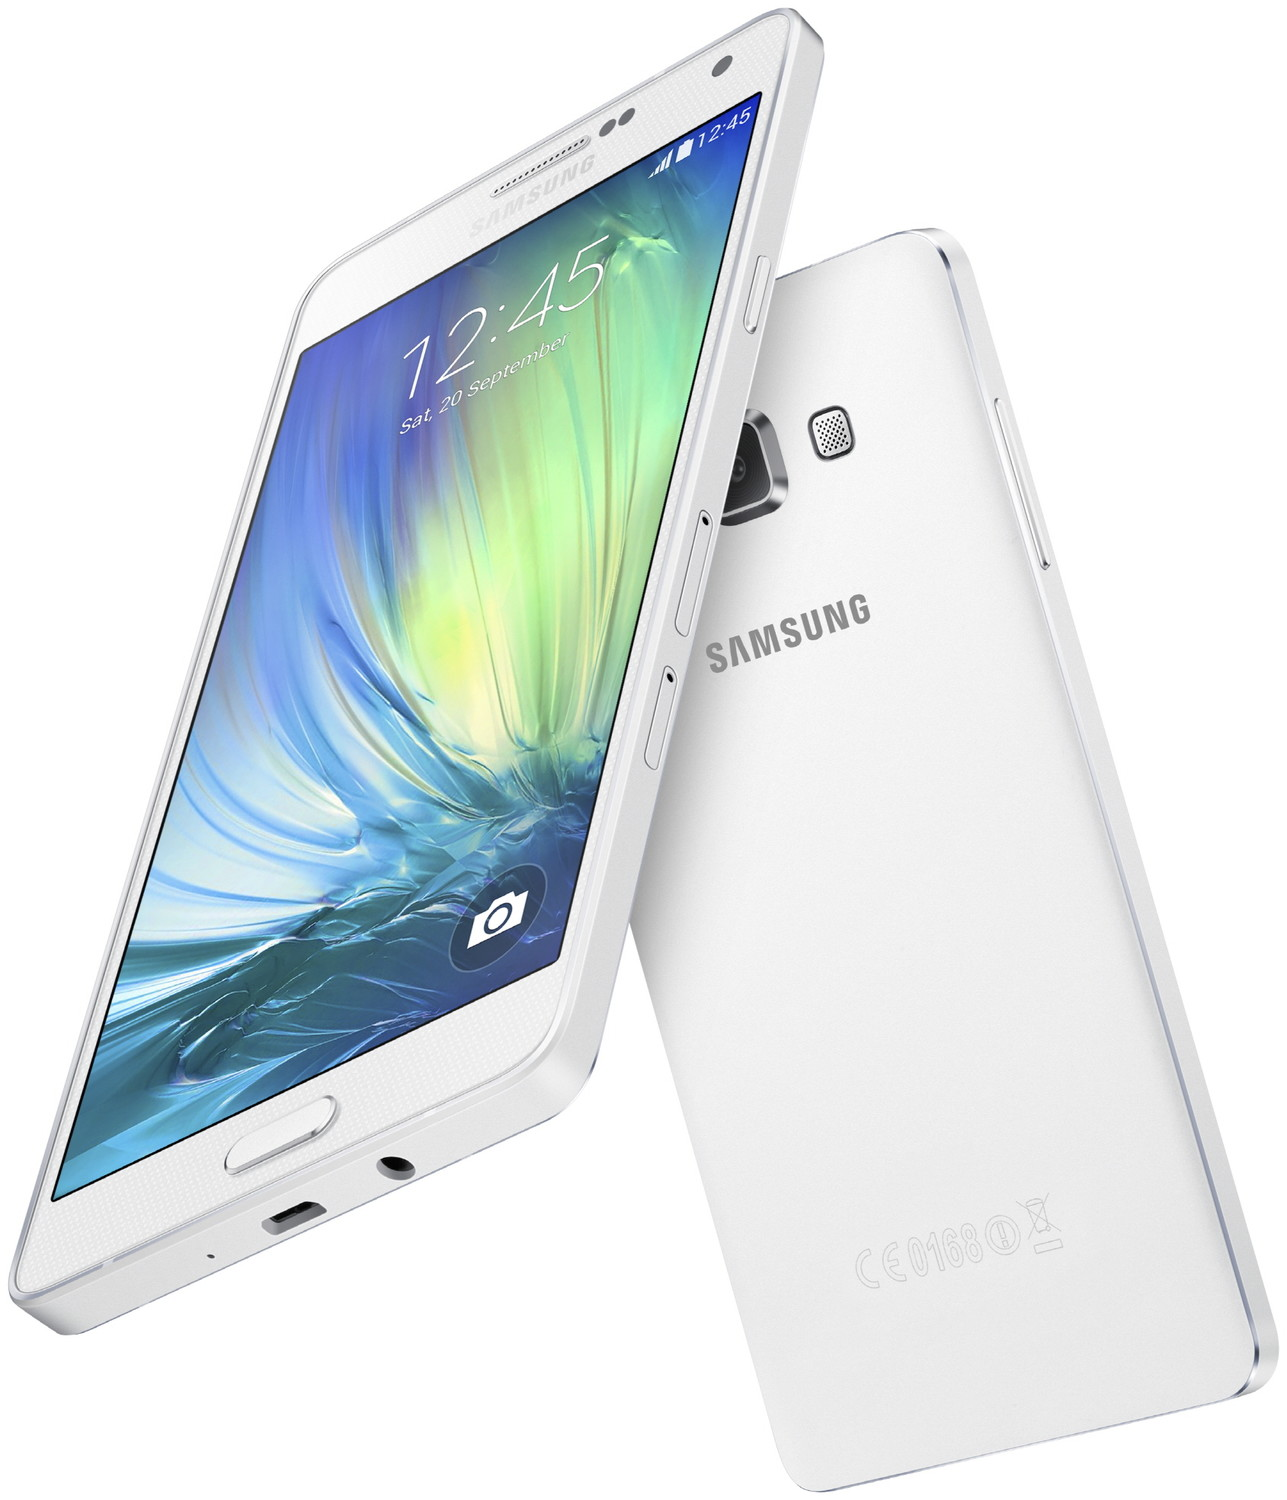 Samsung Galaxy A7 SM-A700FD - Specs and Price - Phonegg